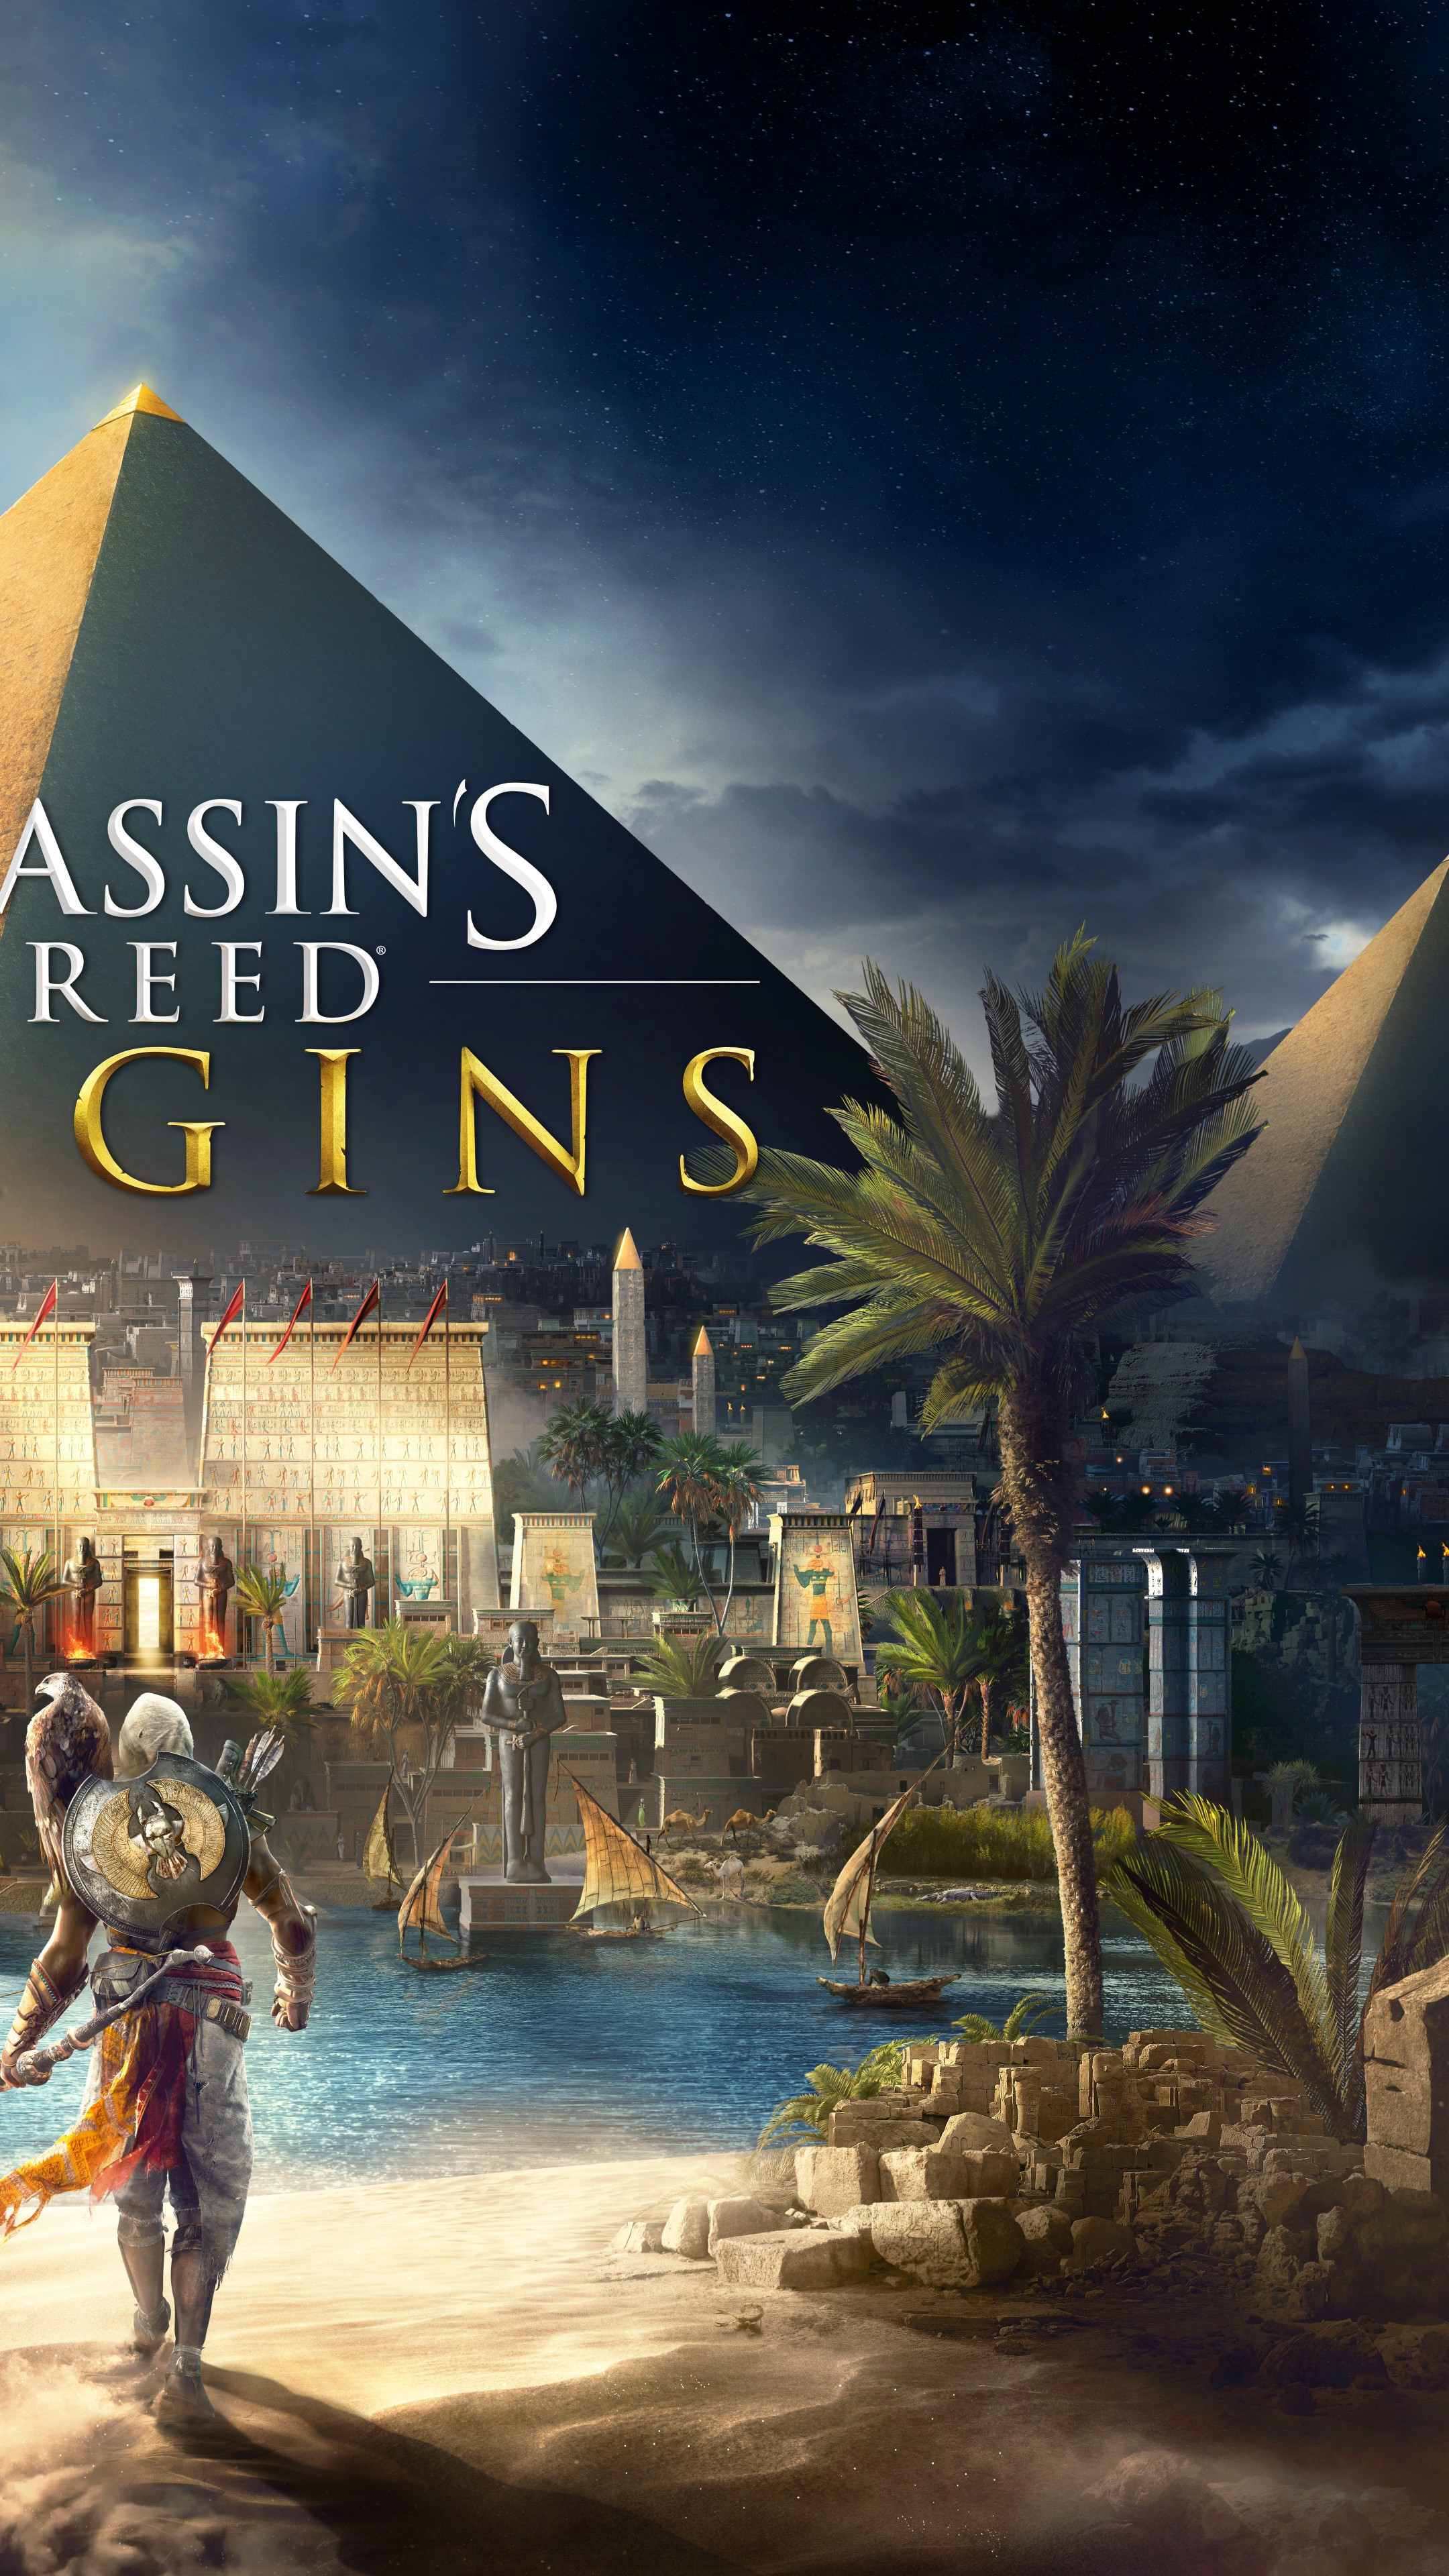 Wallpaper Assassins Creed Origins 4k E3 2017 Poster